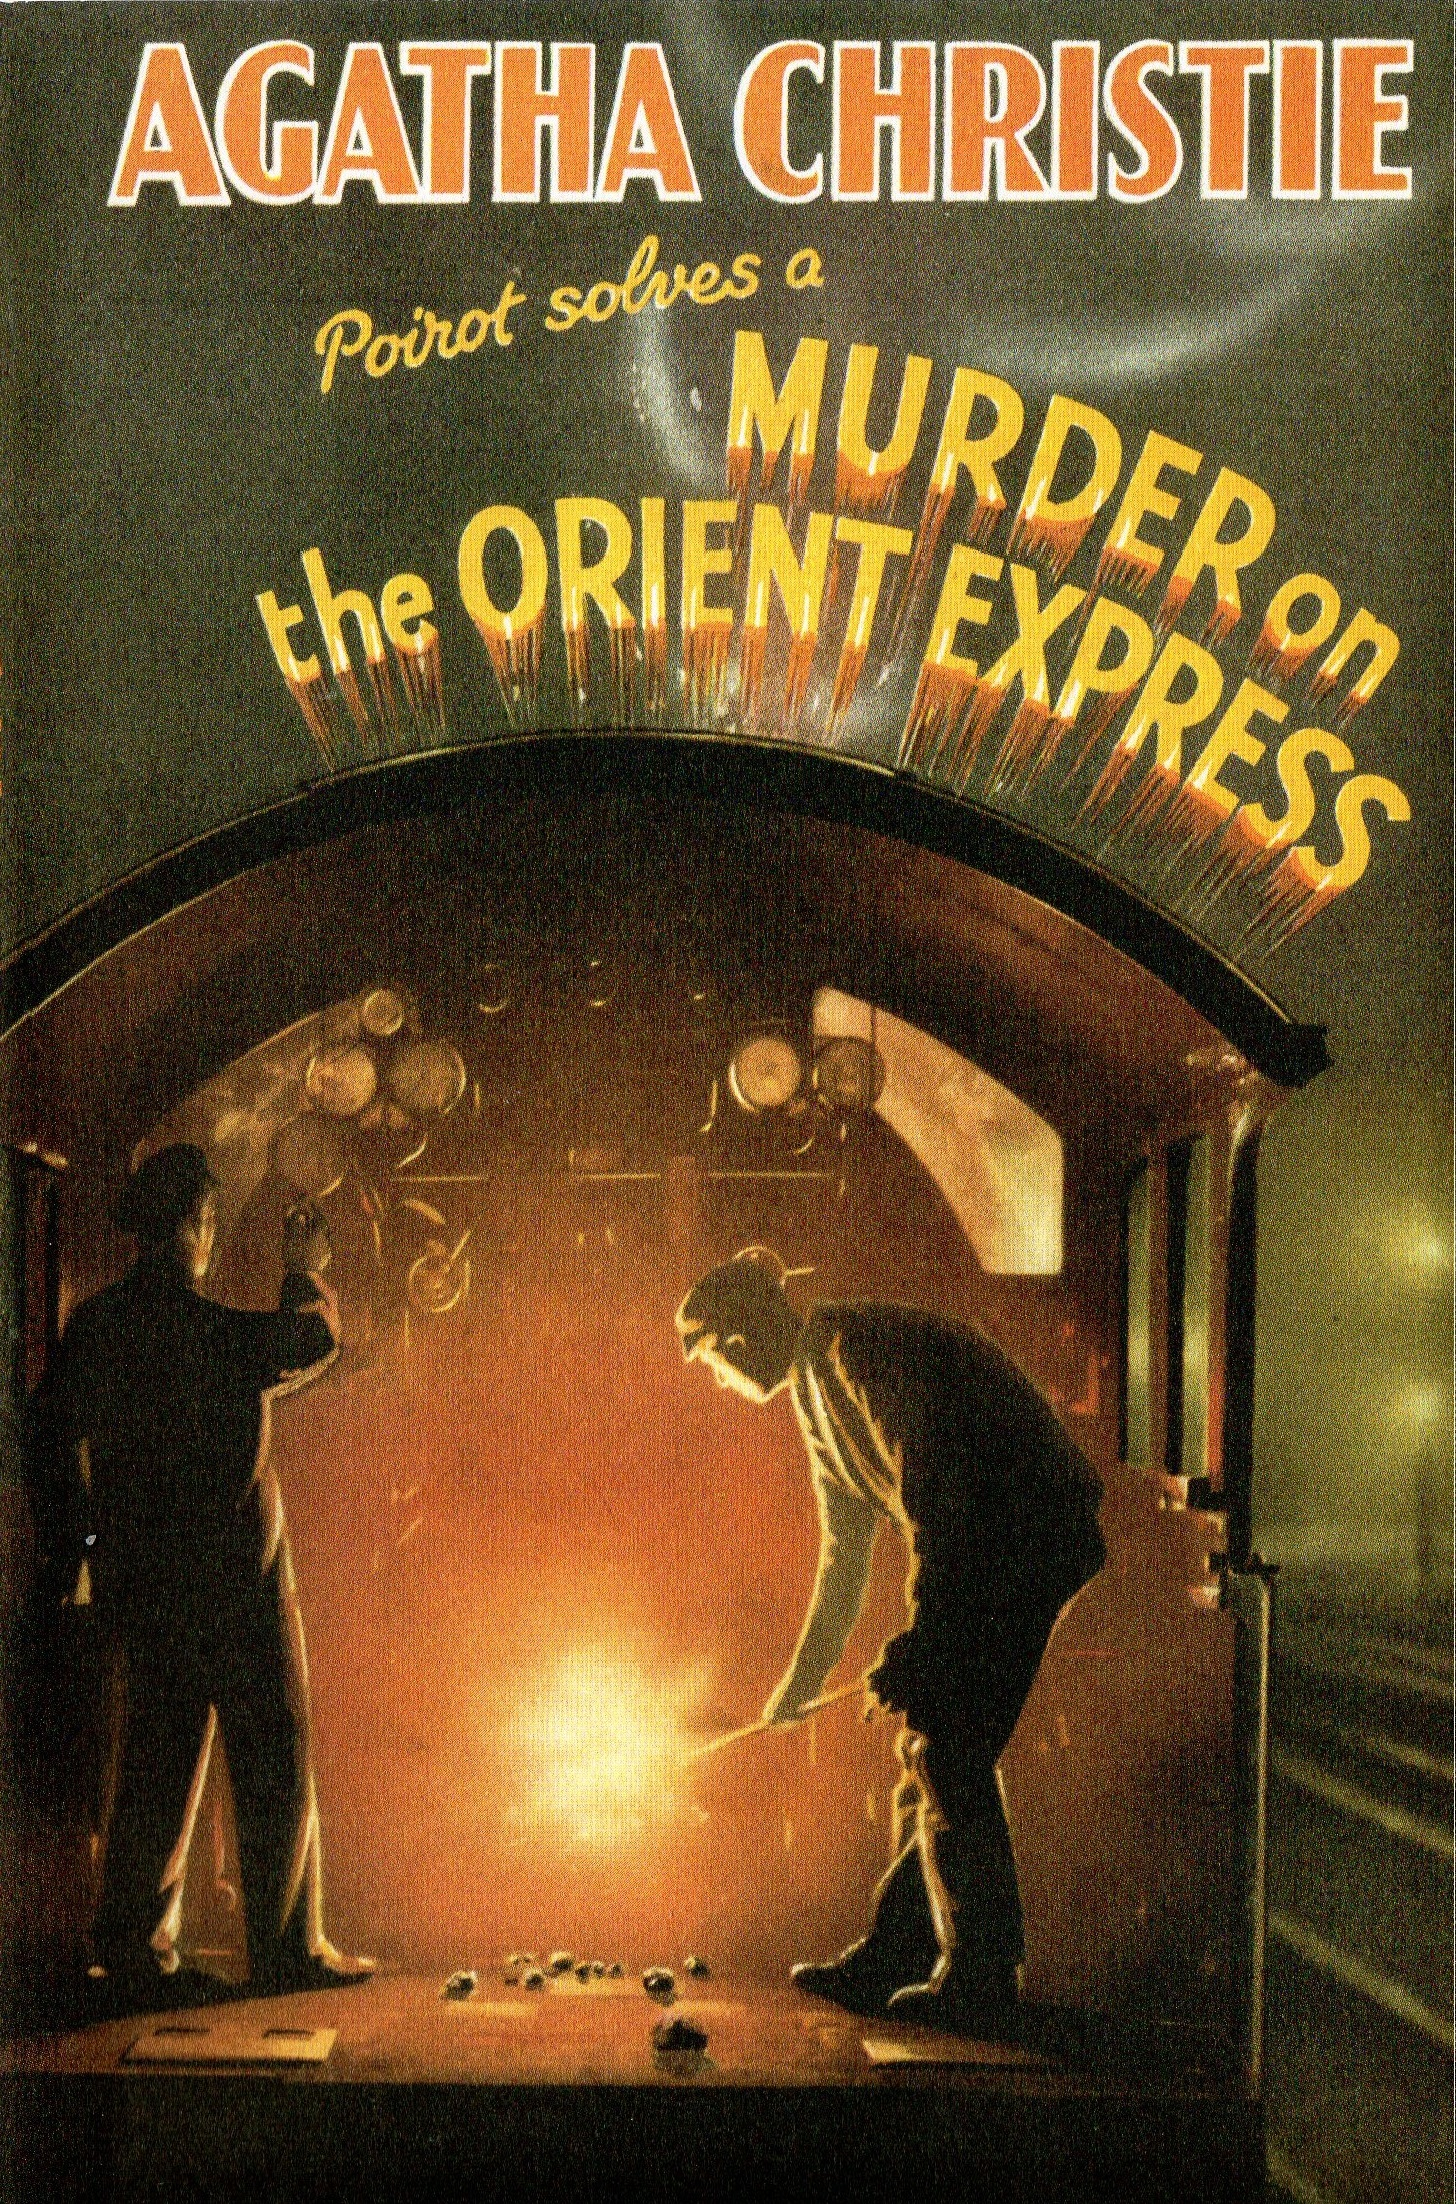 murder on the orient express first edition cover 1934